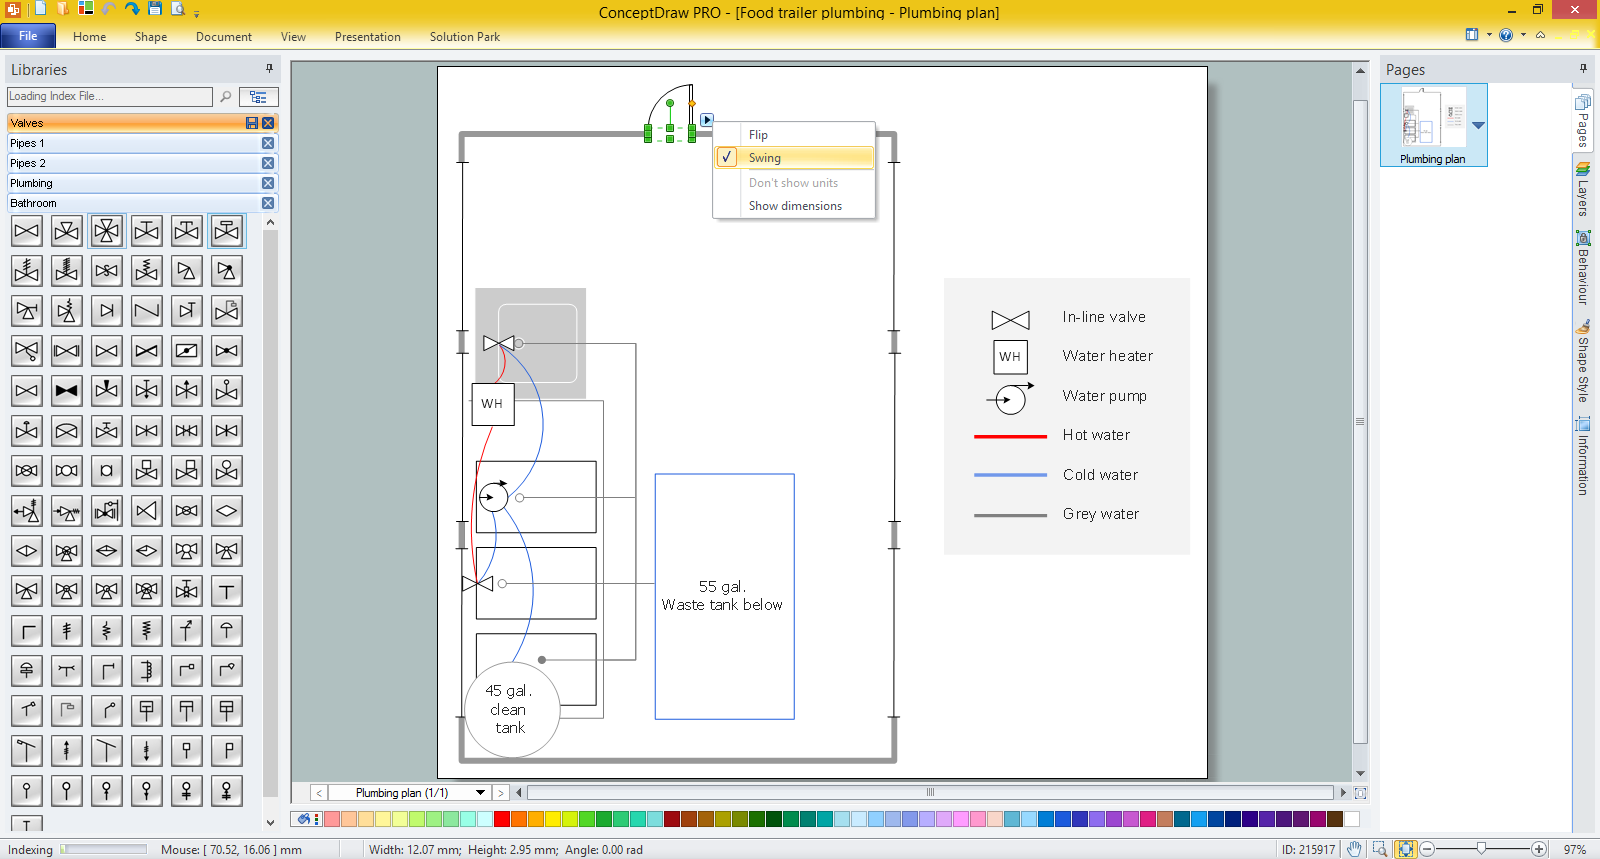 piping instrumentation diagram software pngpiping and instrumentation diagram software